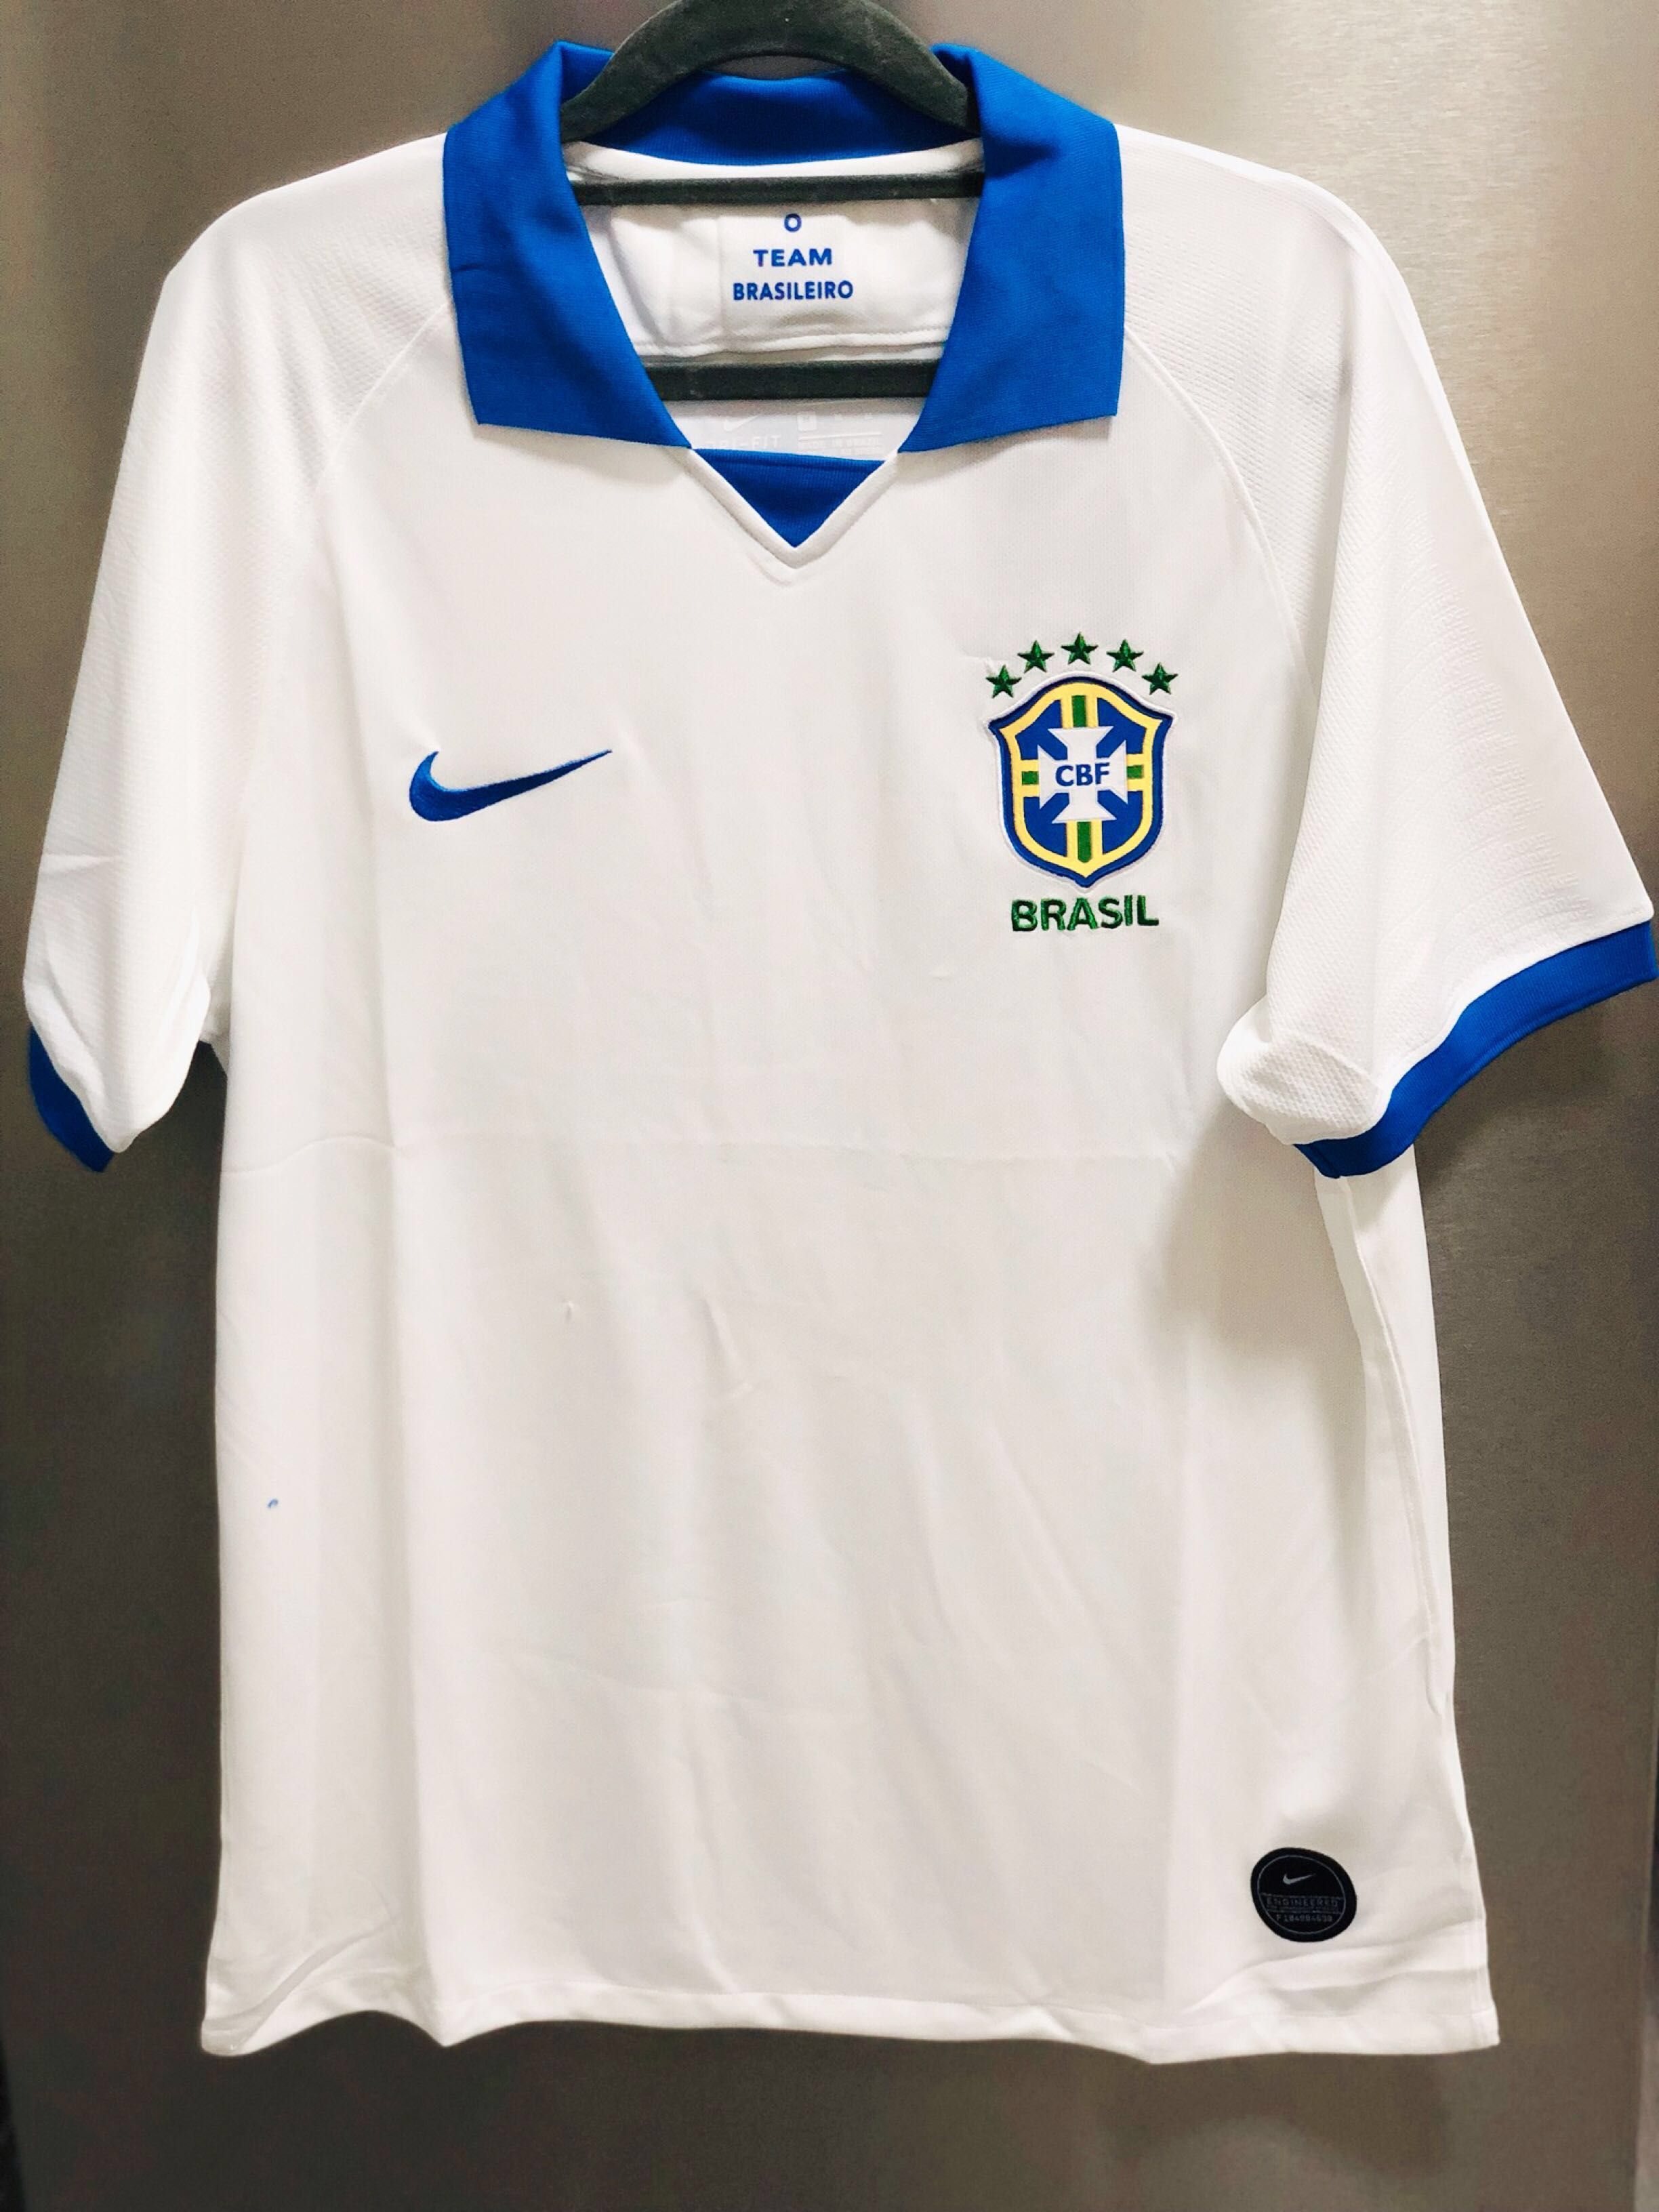 check out d3bce 2f63b Brazil 100th Anniversary Football Jersey